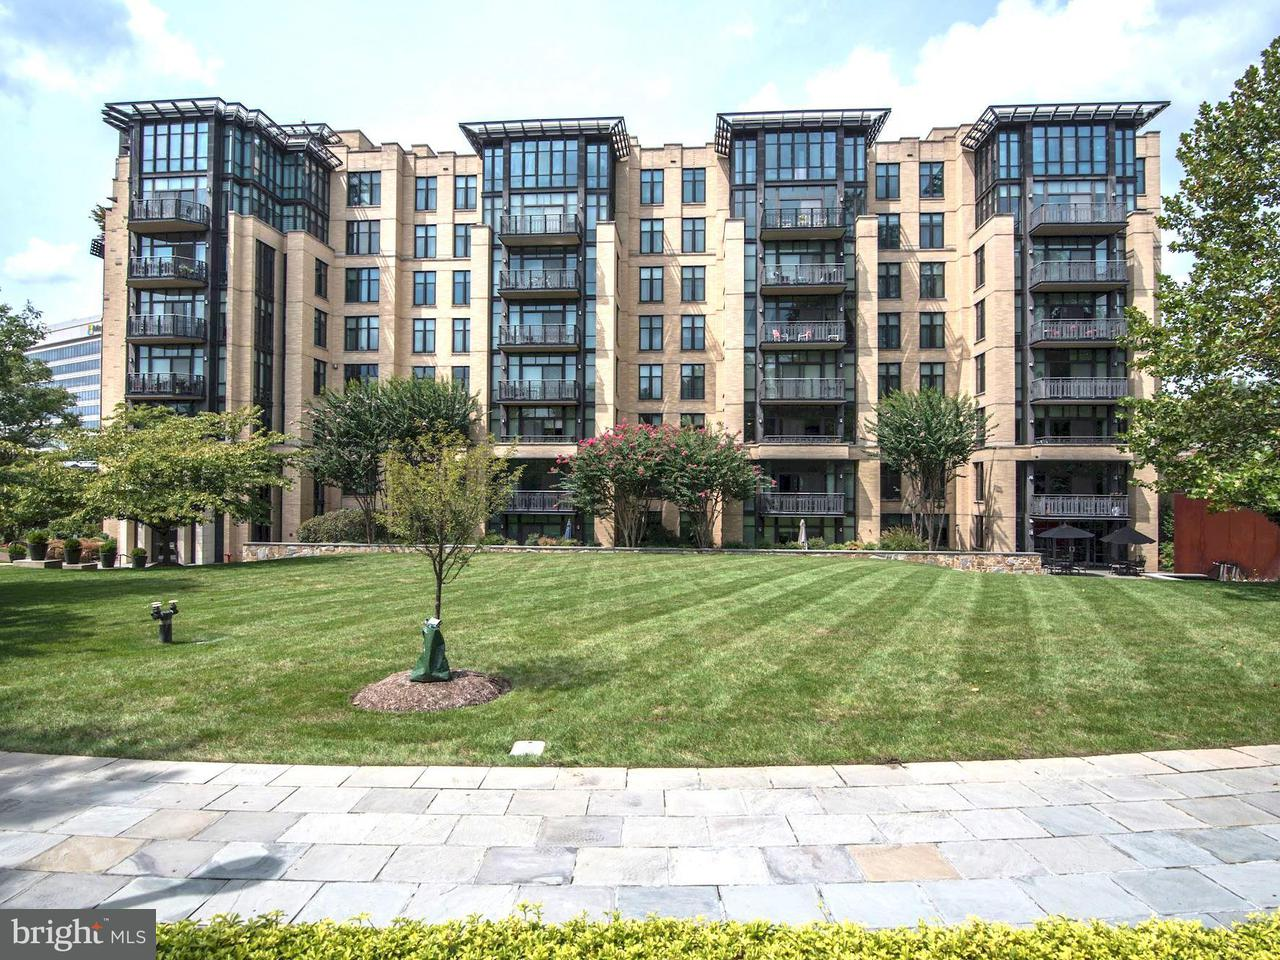 Single Family Home for Sale at 4301 MILITARY RD NW #112 4301 MILITARY RD NW #112 Washington, District Of Columbia 20015 United States